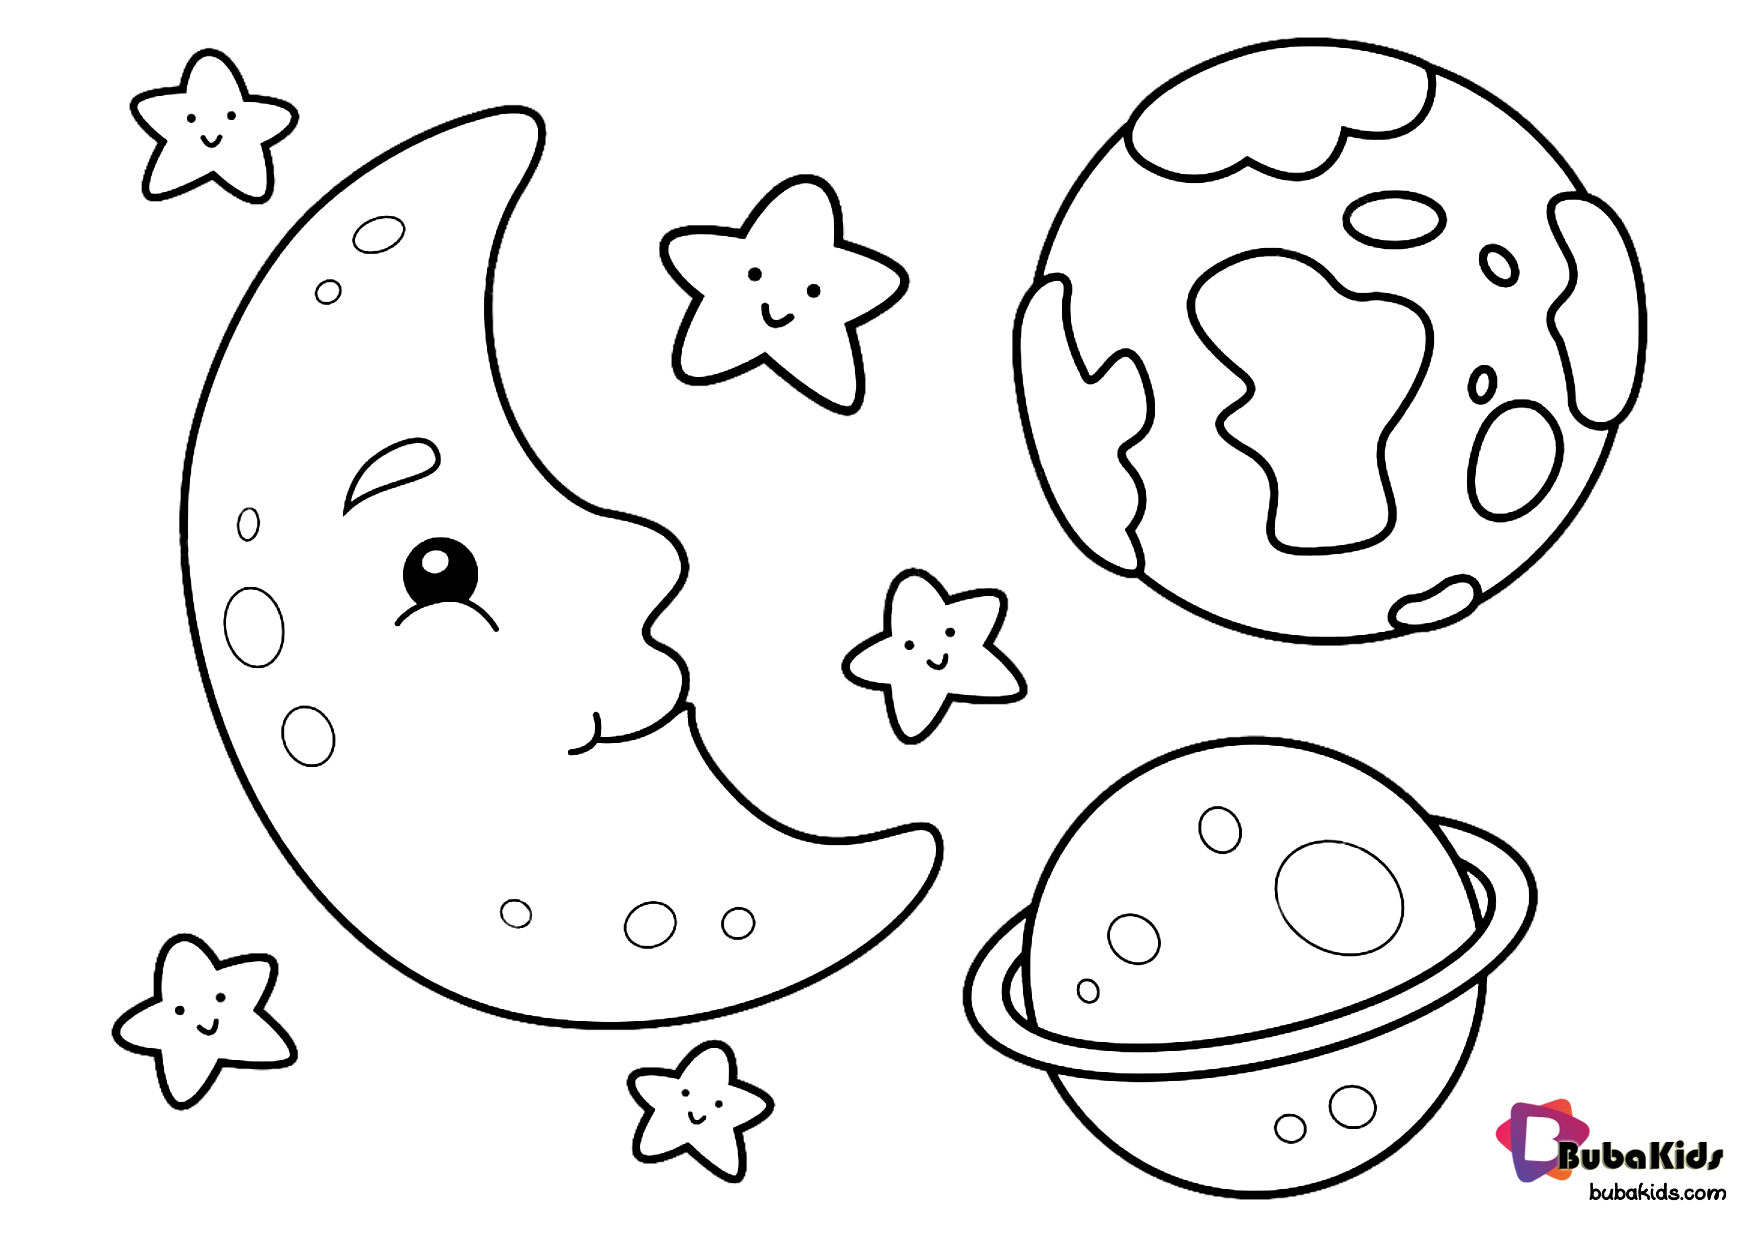 Moon Earth Stars And Saturn Outer Space Coloring Page For